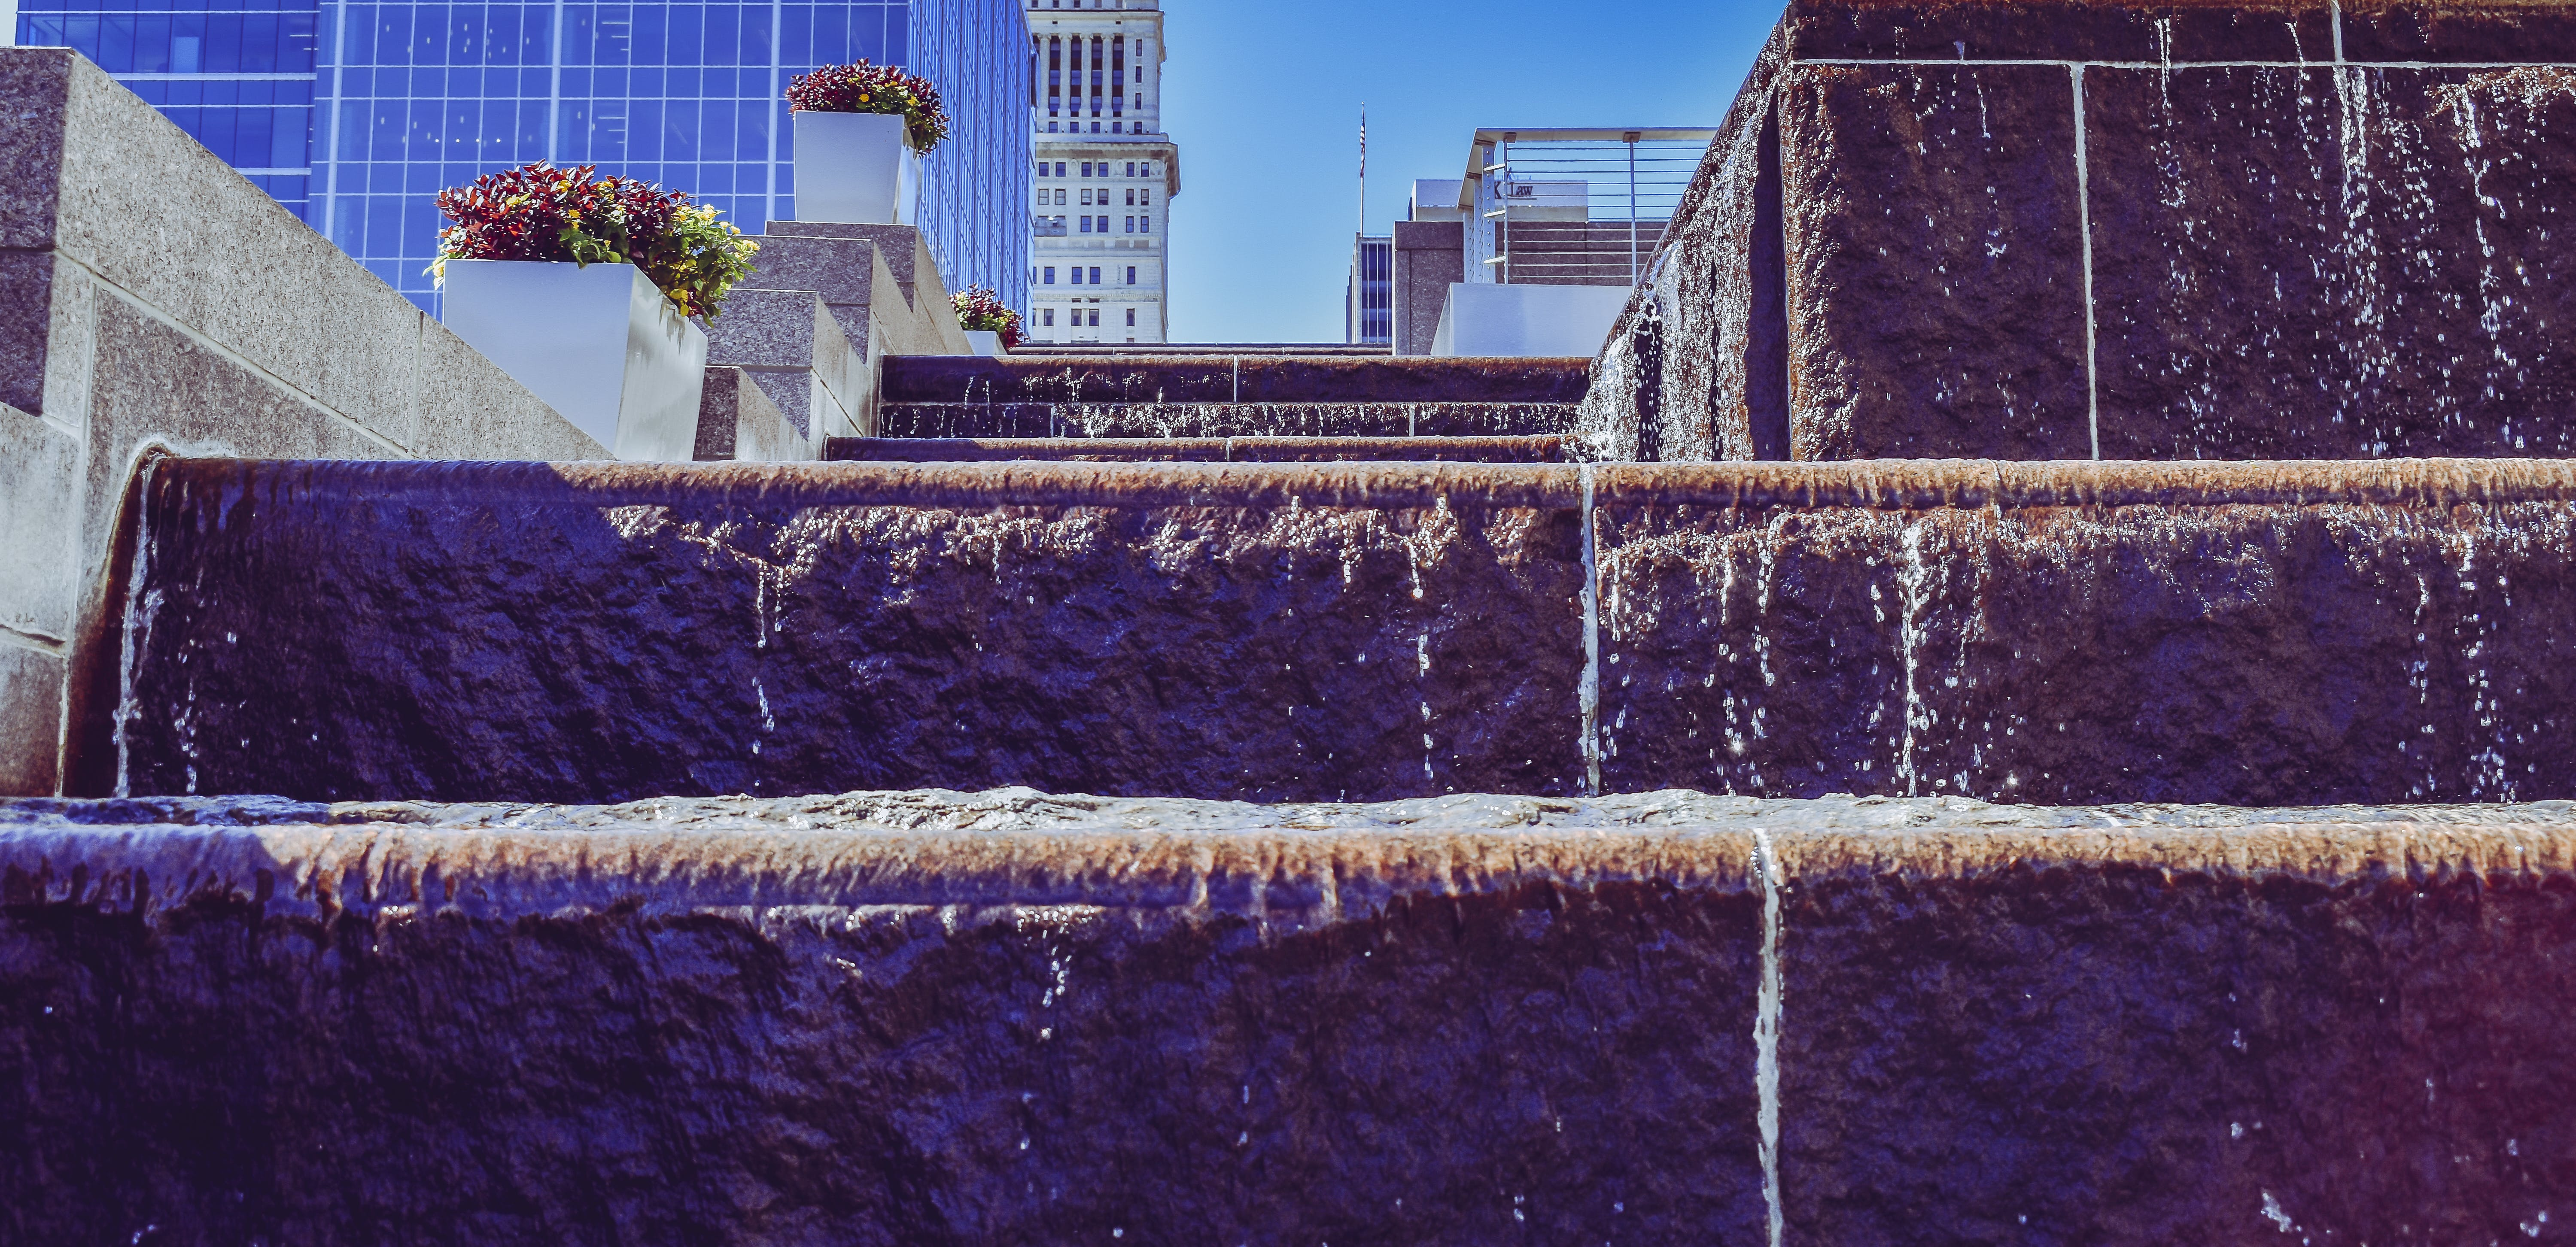 Free stock photo of water, fountain, outdoor